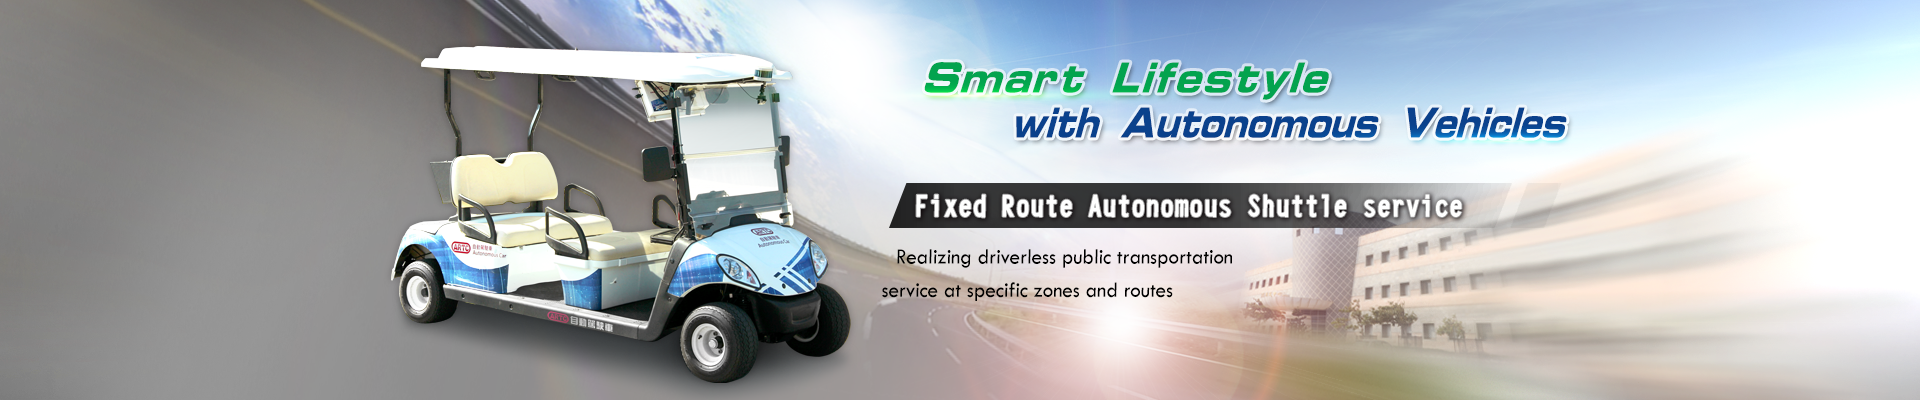 Smart Lifestyle with autonomous vehicles-2